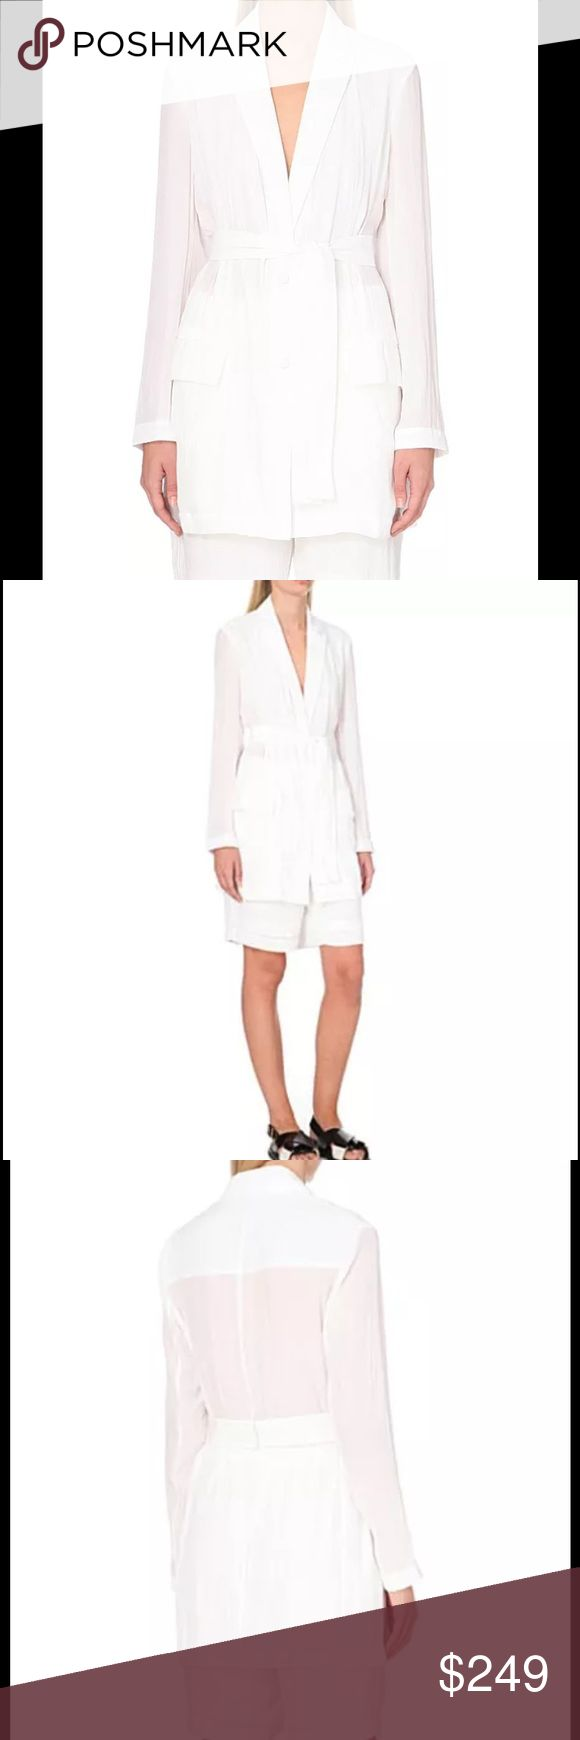 THEORY White Influx Glider Longline Blazer Jacket NWT $395 THEORY White Influx Glider Longline Blazer Jacket Sz S  A relaxed take on a typically assertive style, the Influx jacket from contemporary New York label, Theory is designed to a streamlined silhouette. A diaphanous, featherweight fabrication, the laid-back yet sophisticated form will layer office looks or complete dinner dressing with ease. Theory longline jacket. Exposed poppers at front. V-neck, long sleeves, two patch pockets…